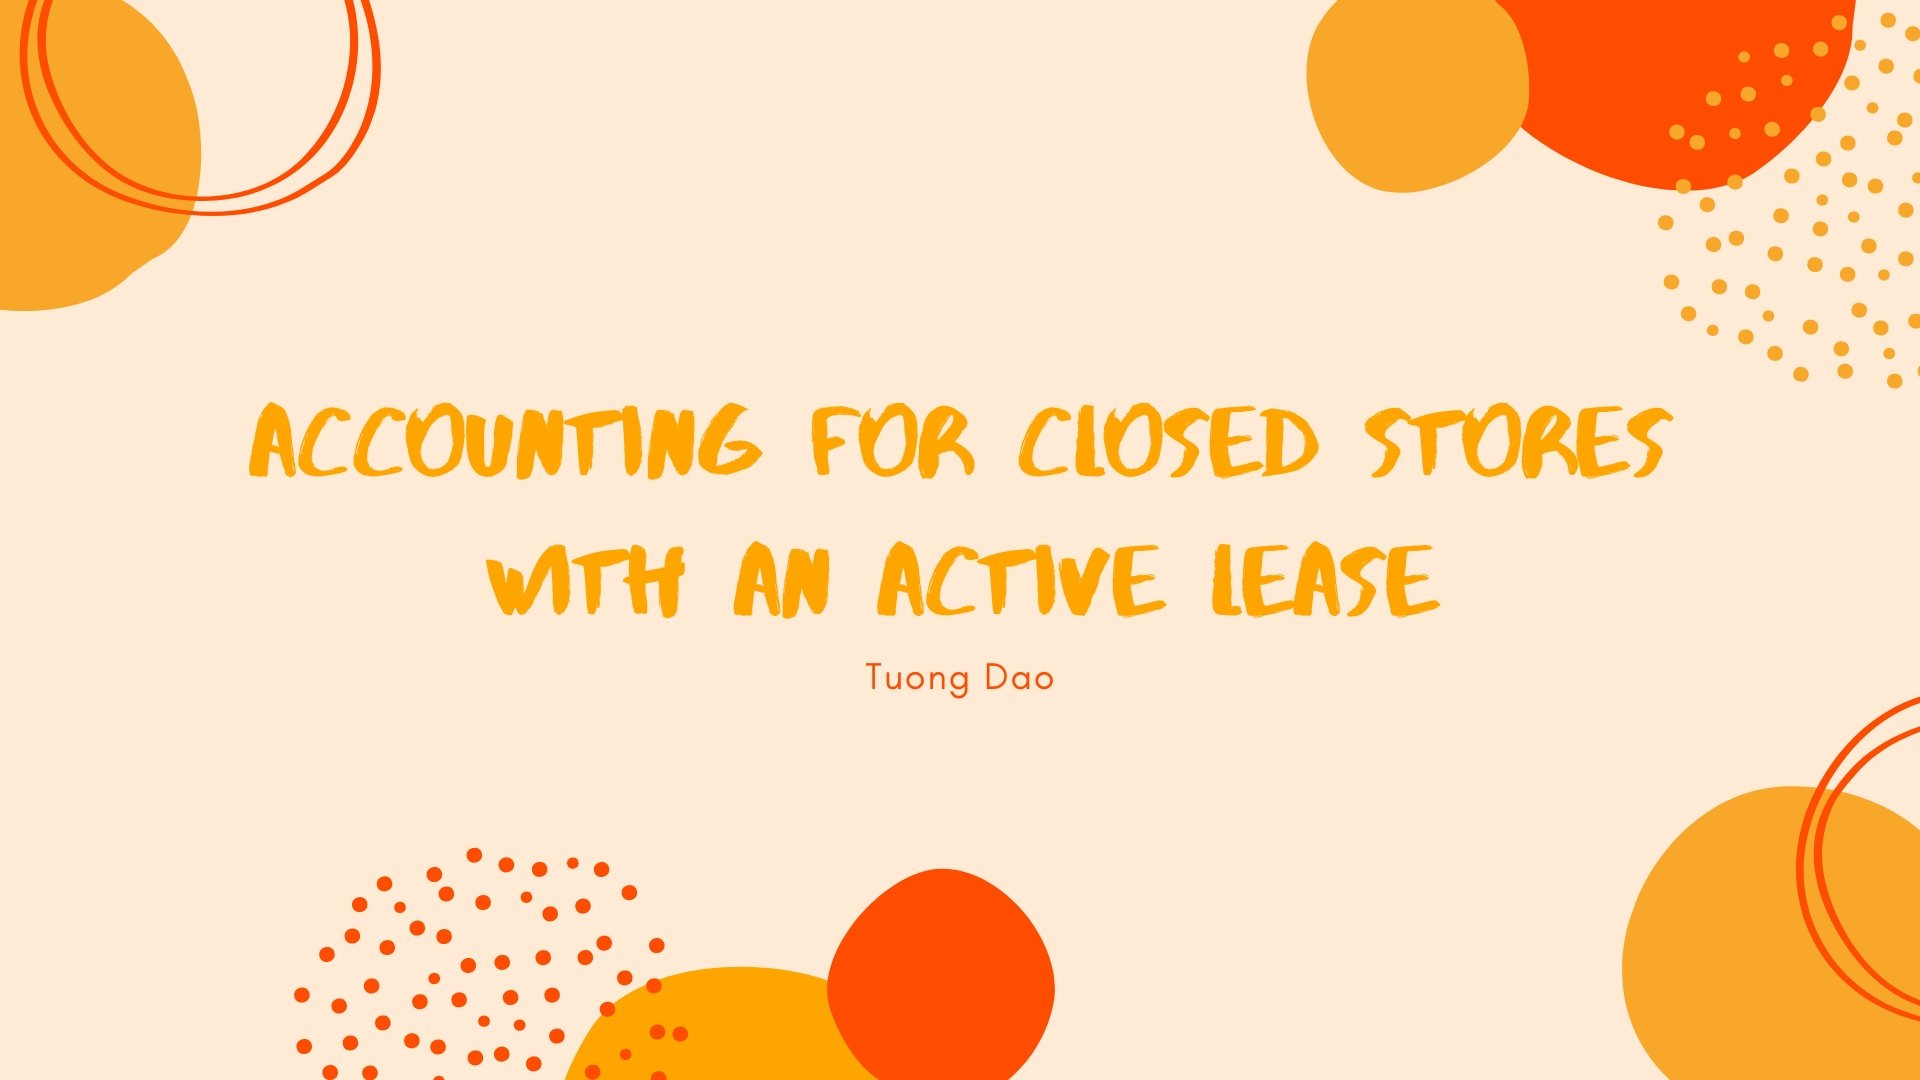 Accounting for Closed Stores with An Active Lease